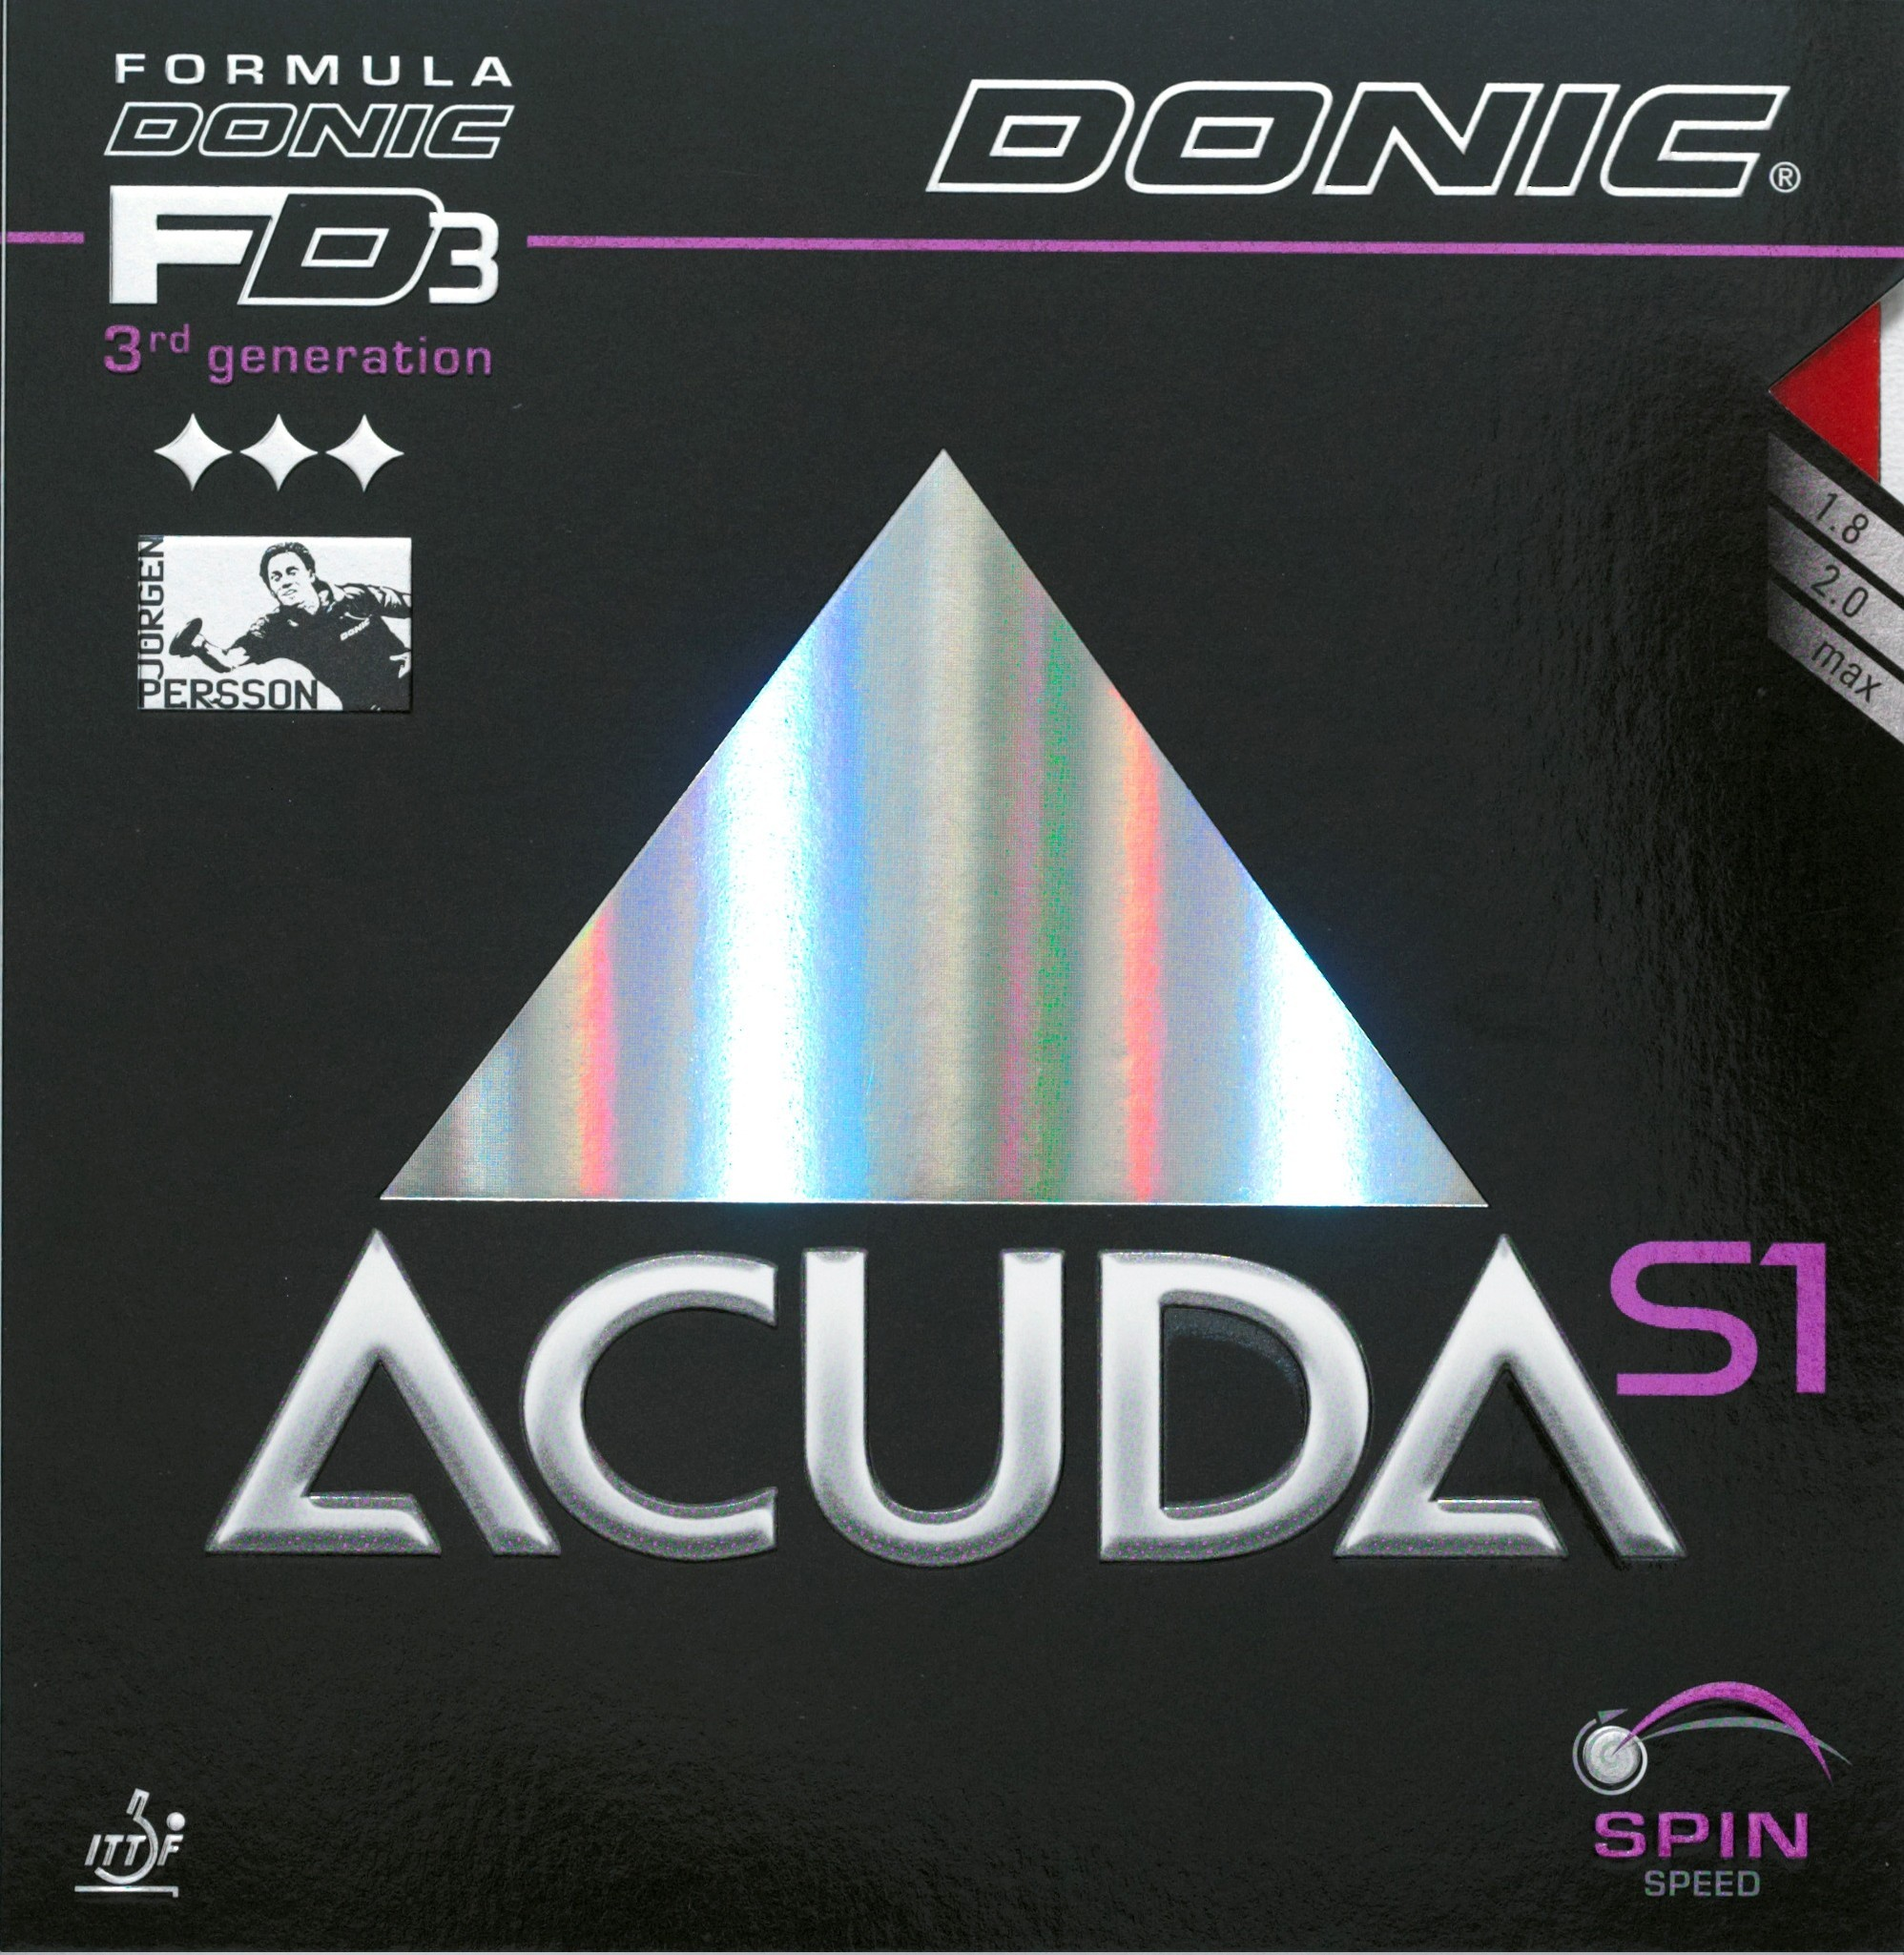 Donic Accuda S1 Table Tennis Rubber.